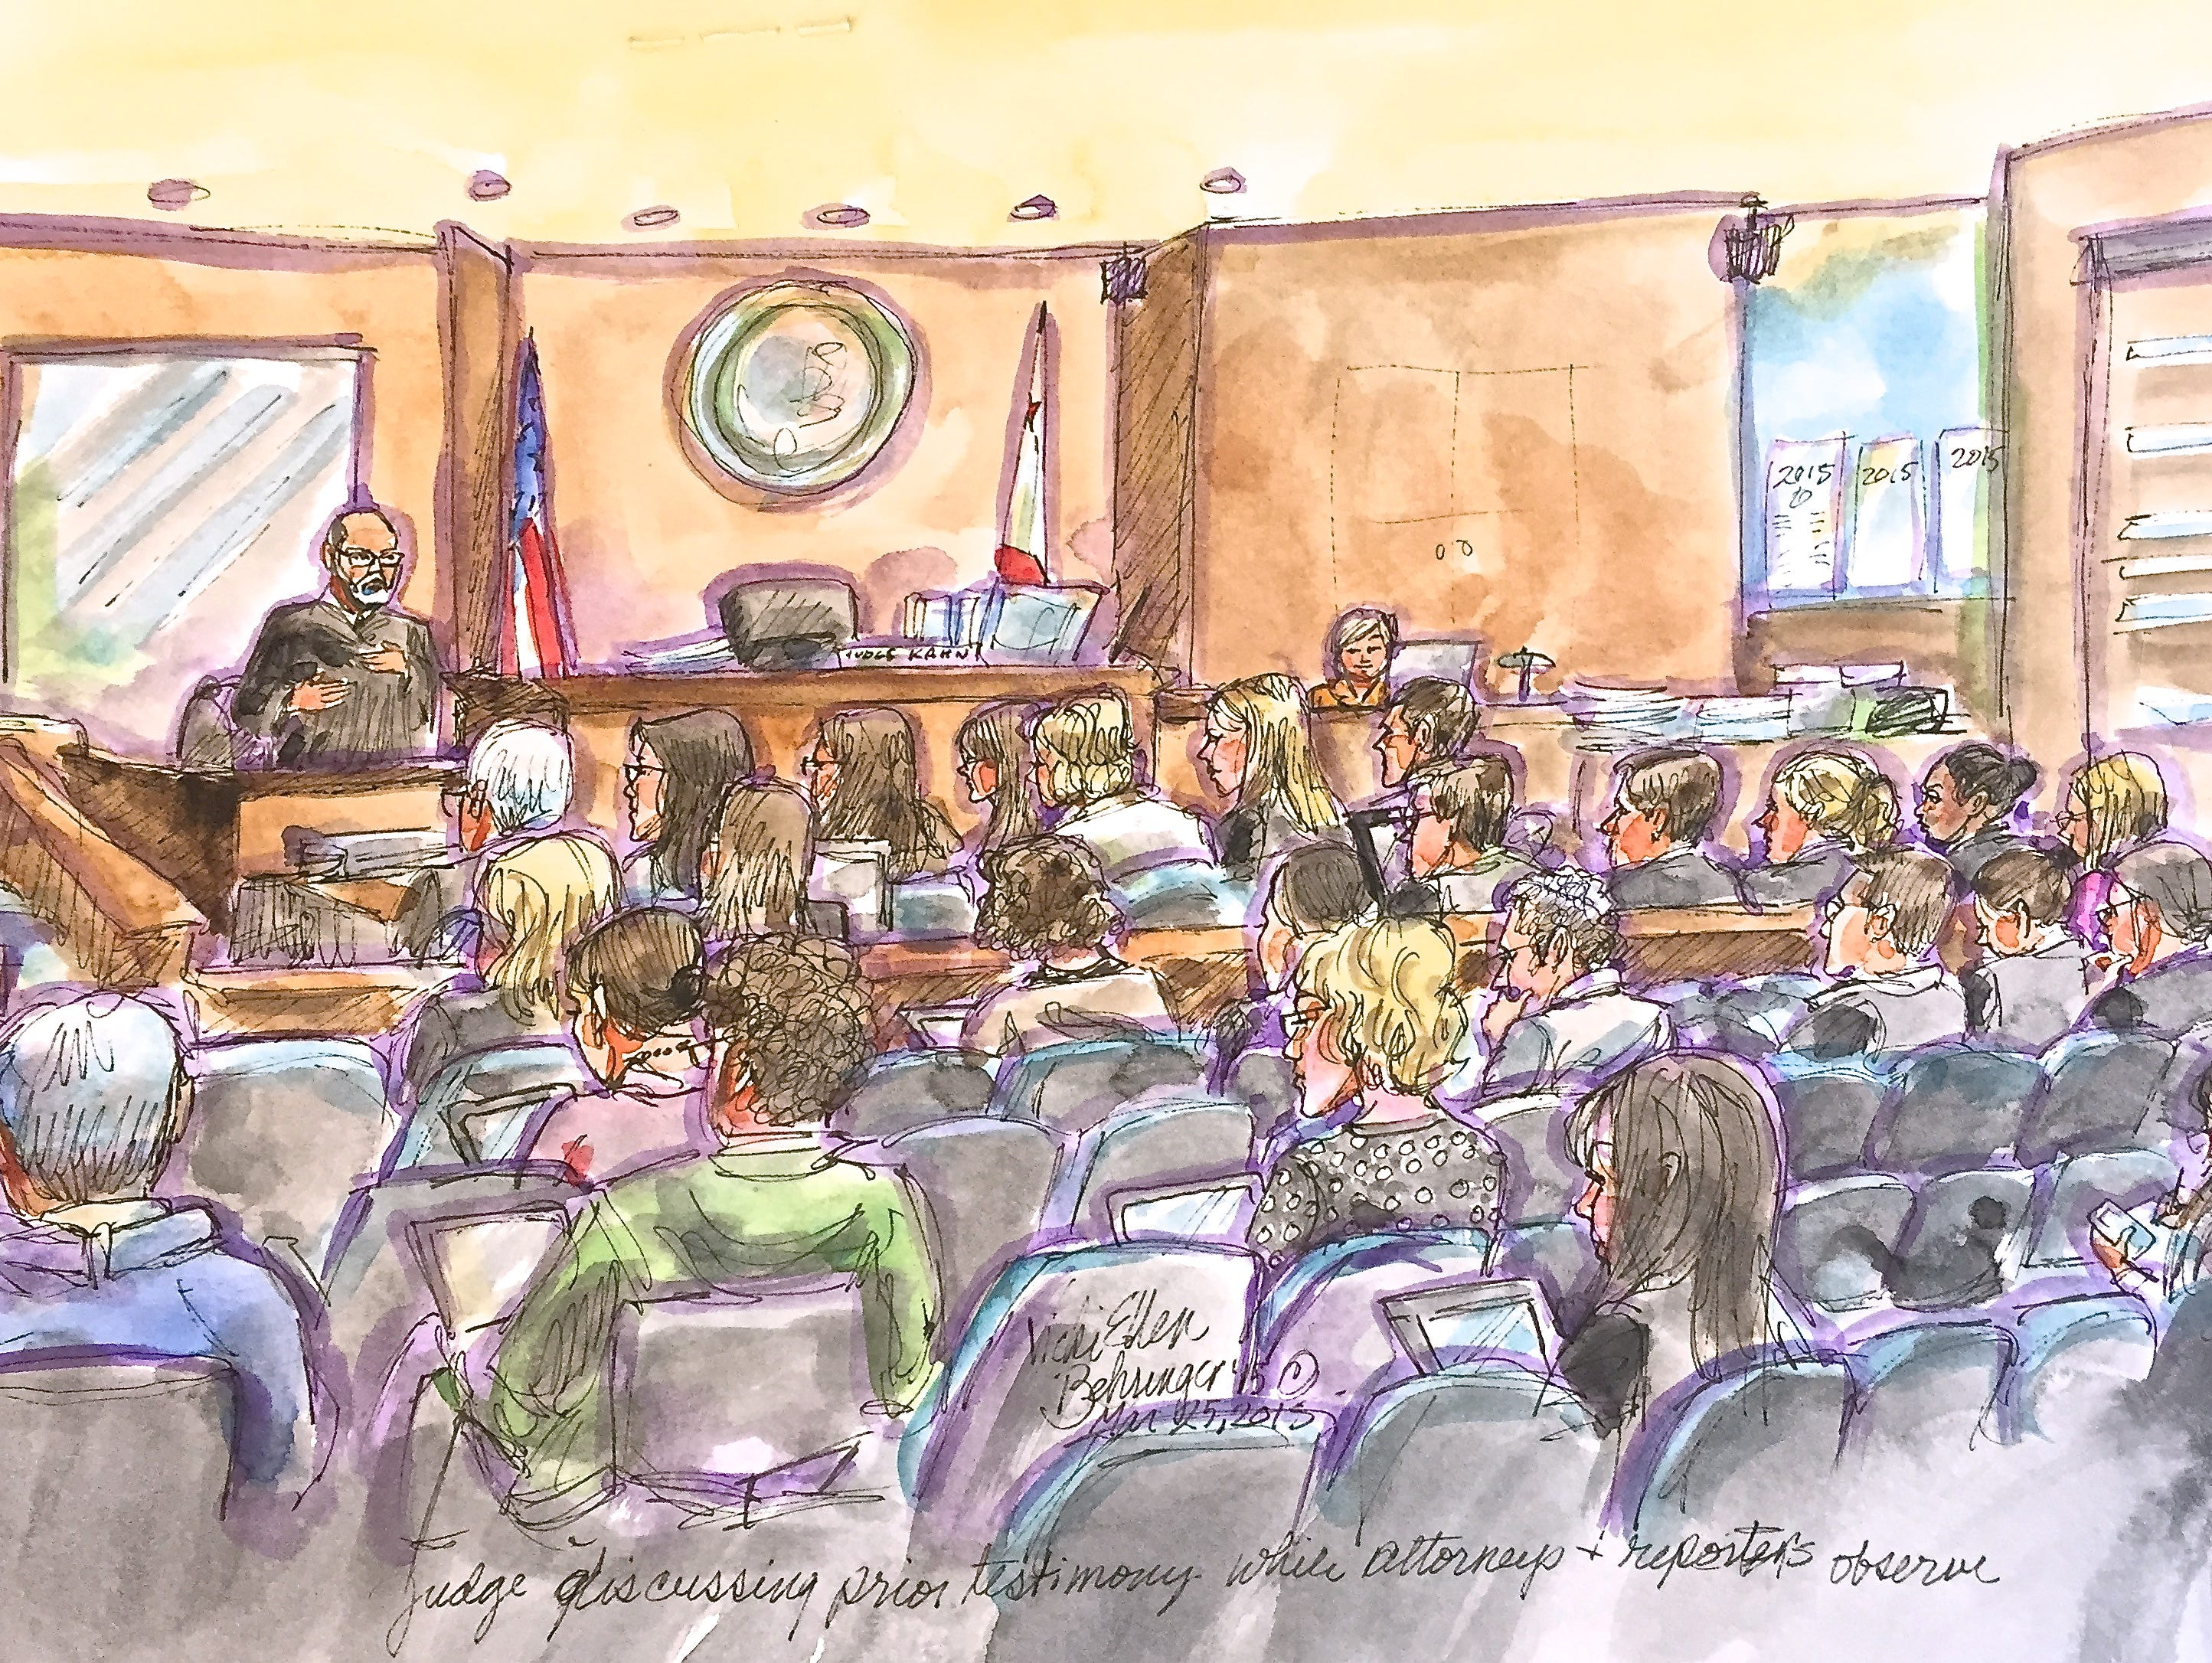 Reporters and lawyers wait for a verdict in Ellen Pao's sex discrimination lawsuit against venture capital firm Kleiner Perkins on March 25. Judge Harold Kahn is at the witness stand, making a point to the assembled attorneys.